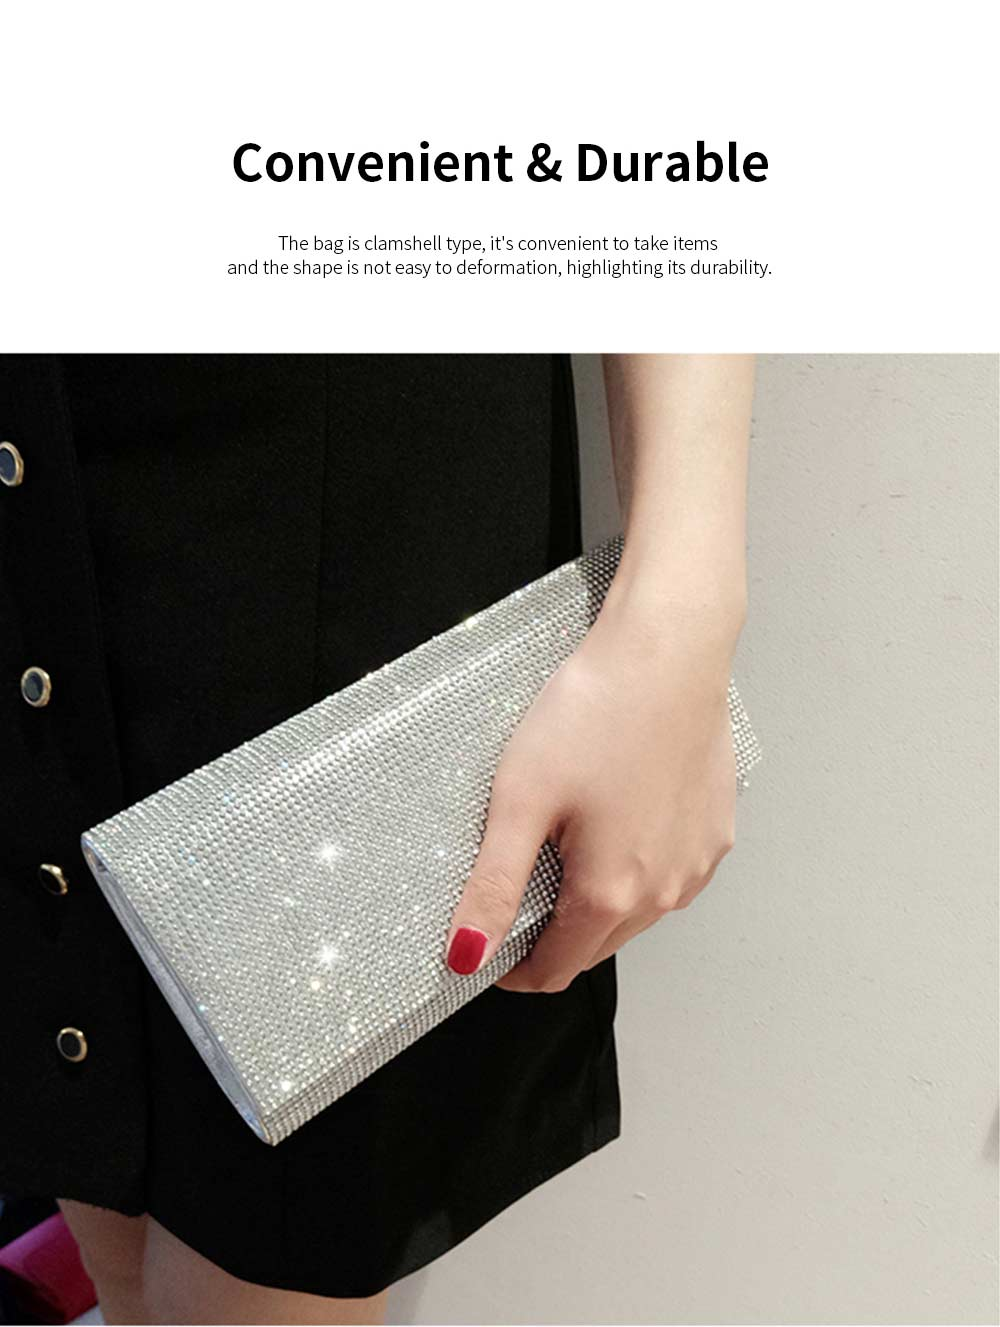 Clutch PU Diamond-studded Material Shiny Surface Long Style Handbag for Dinner Party Women Fashionable Evening Bag 4